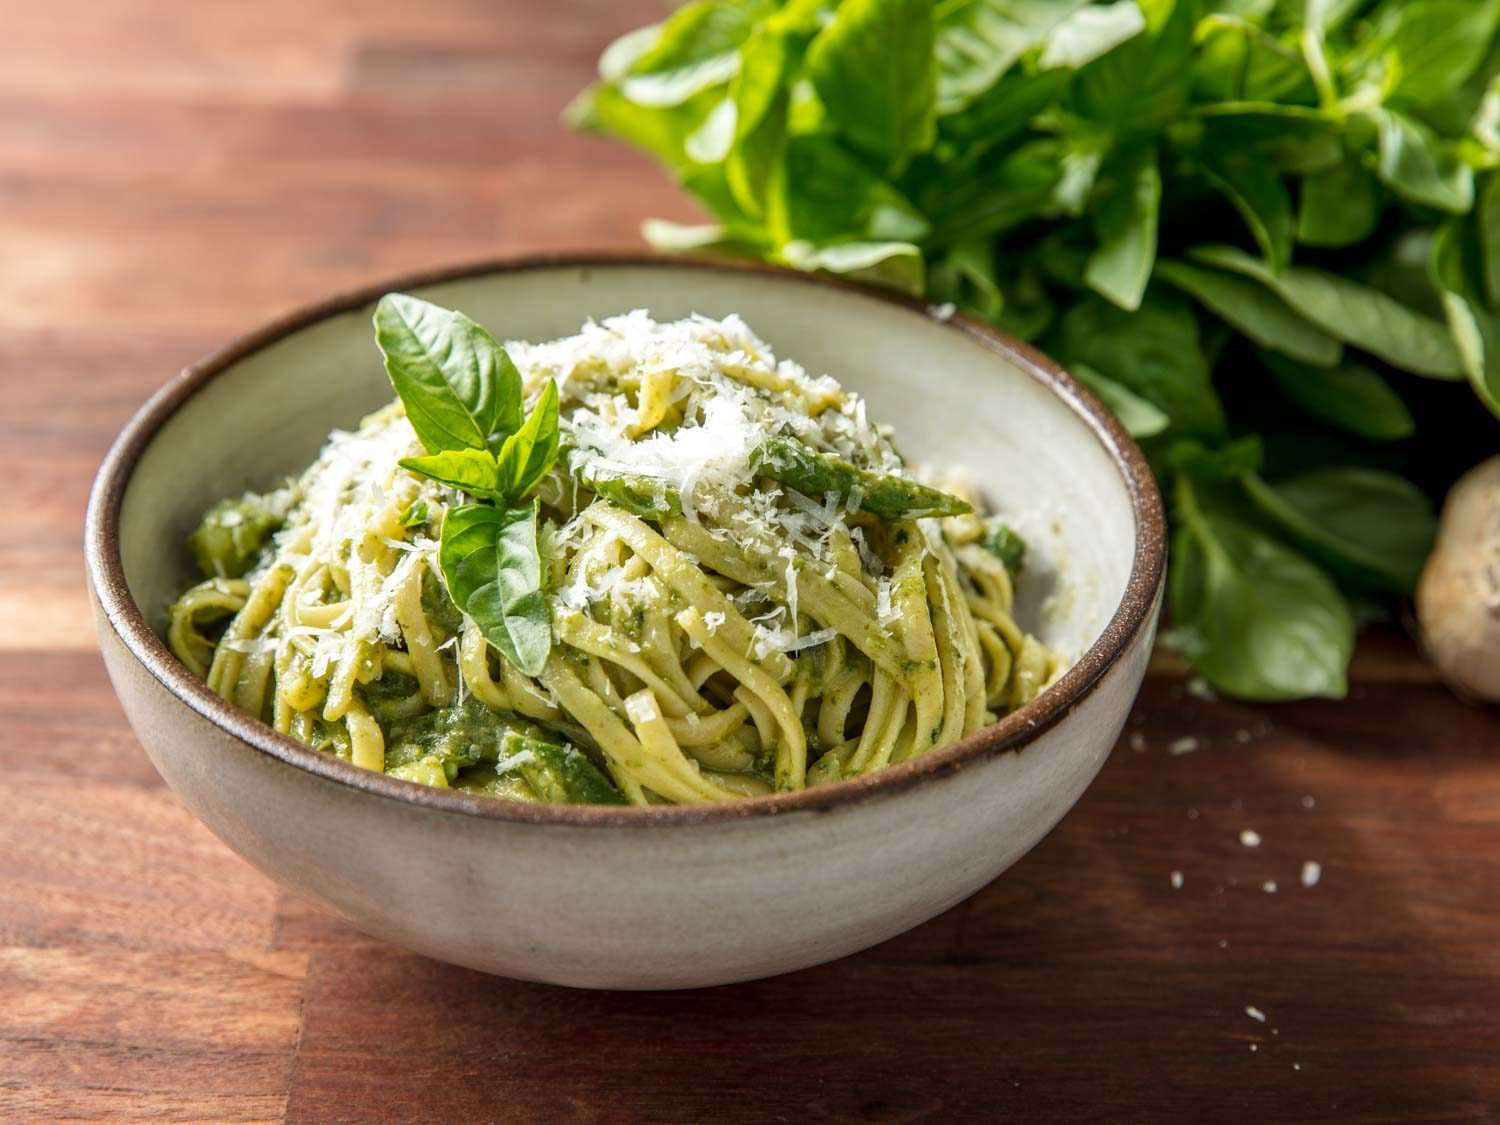 Pesto on linguine in a stone bowl, topped with cheese and basil leaves, with basil leaves in the background.